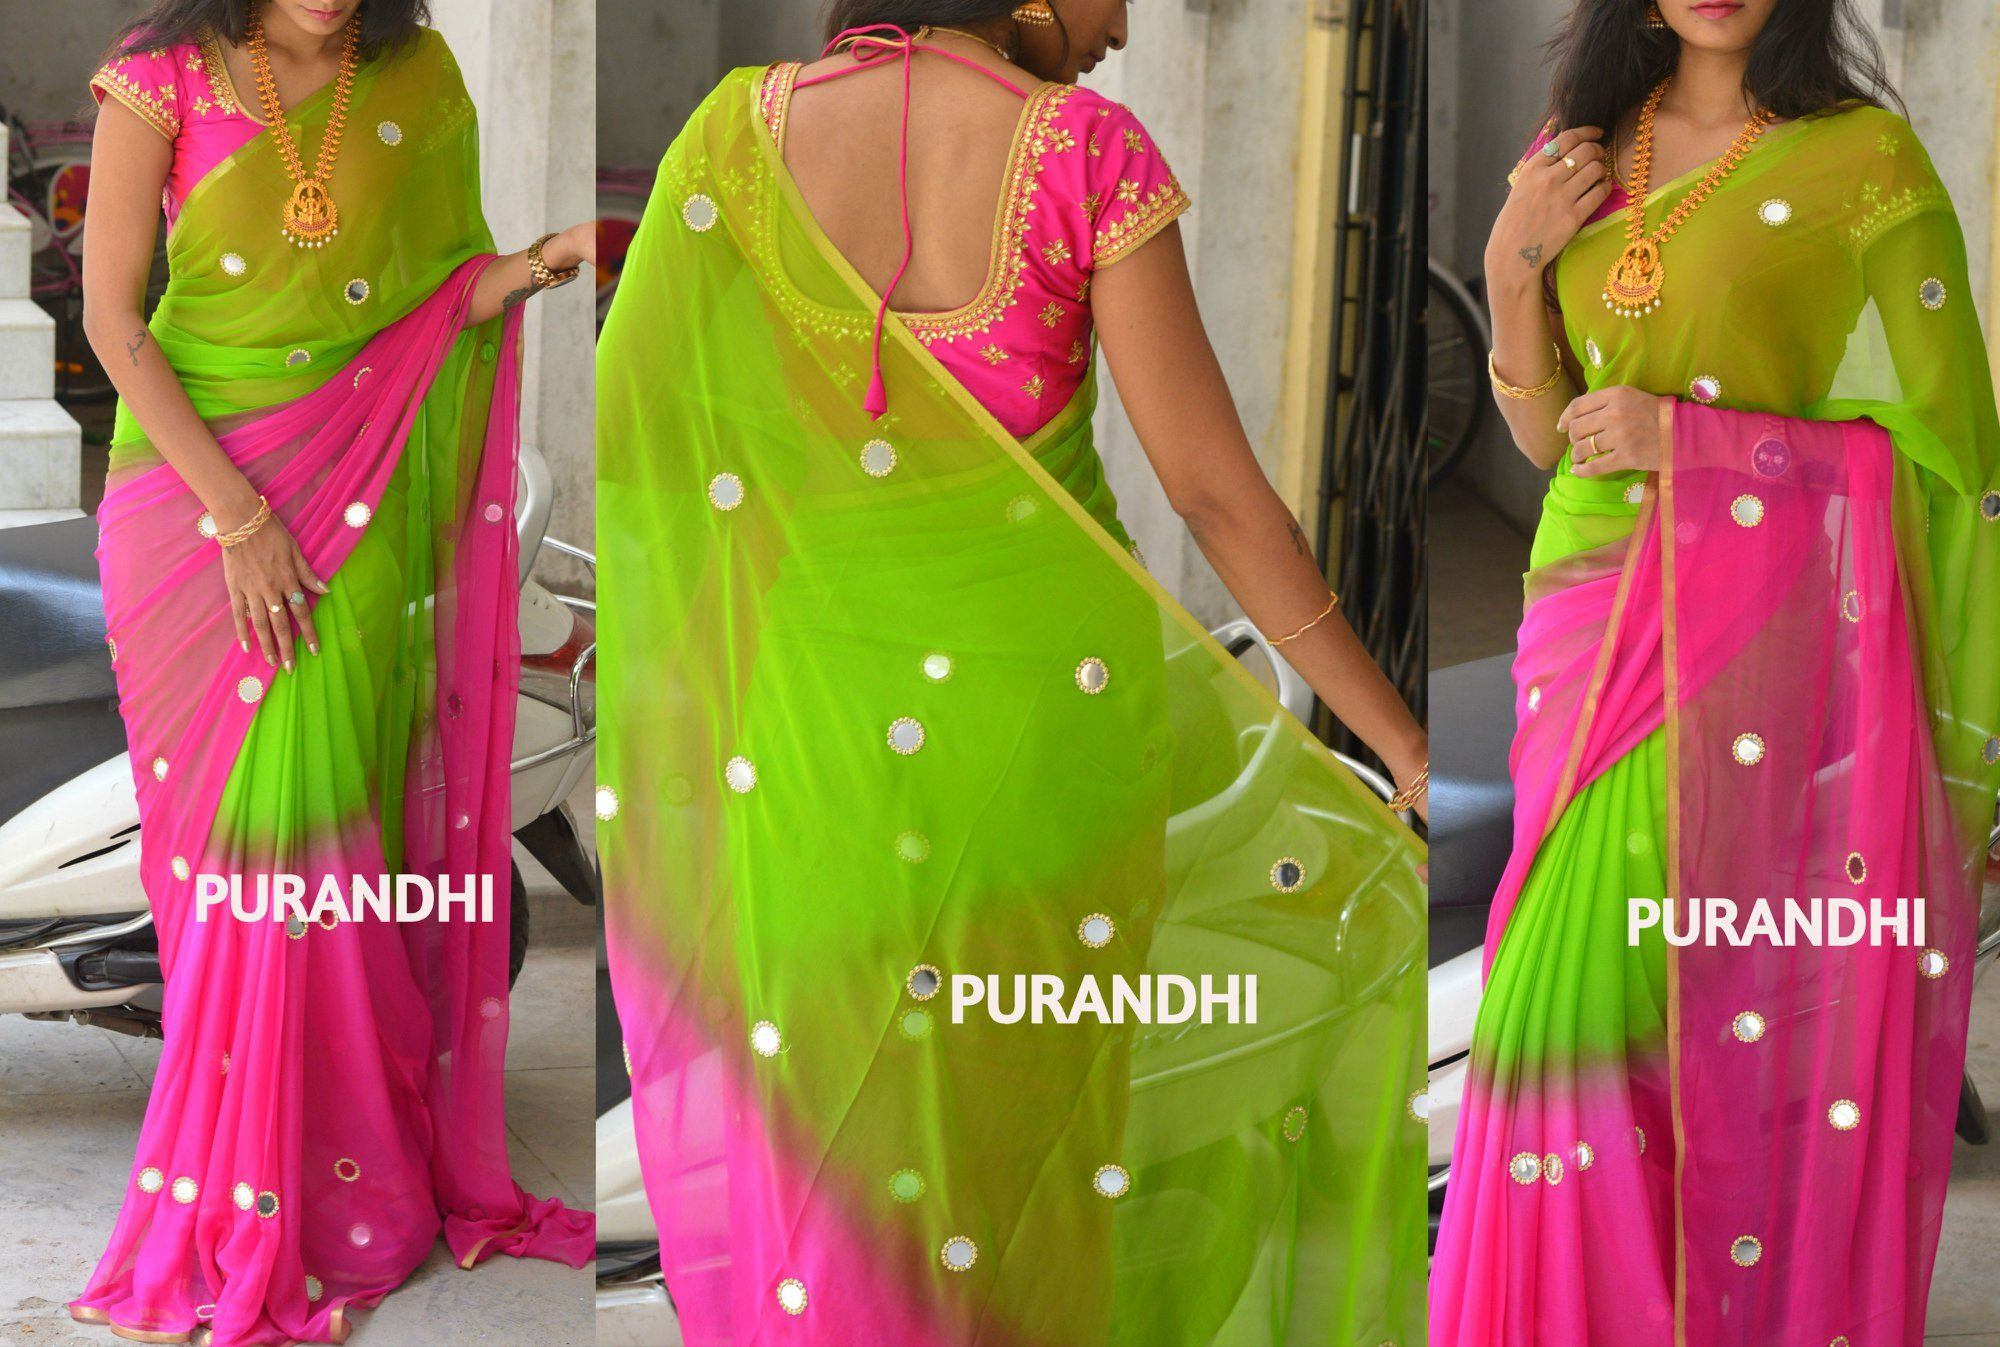 bfe2cda3dbef89 Stunning parrot green and pink color combination fancy saree with hand  embroidery mirror work. To Buy this saree please contact on whats app :  9701673187 ...